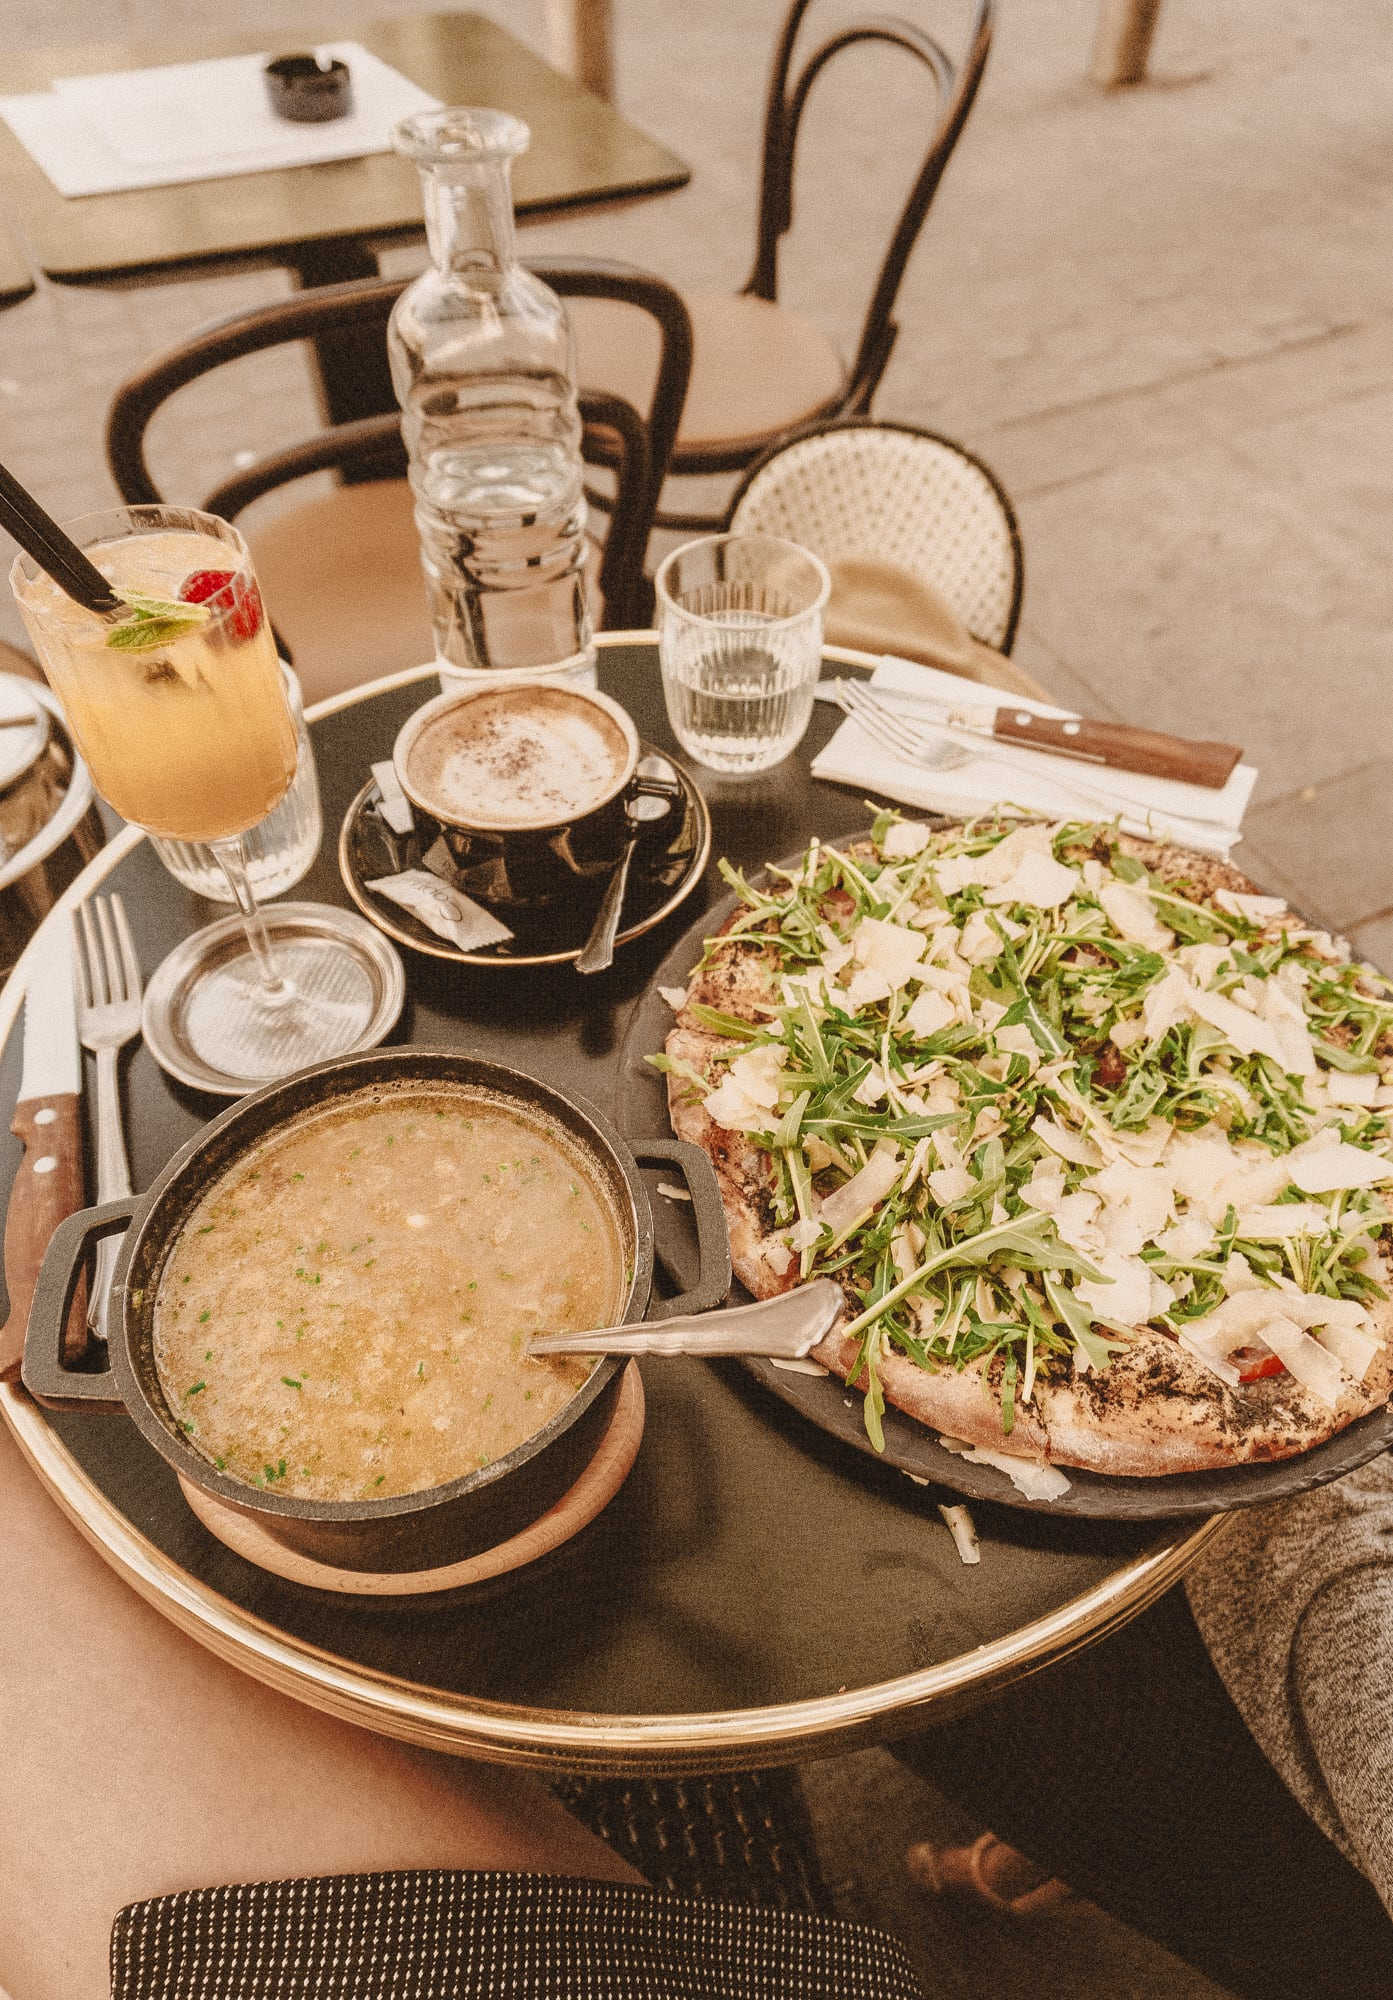 onion soup and pizza in Paris